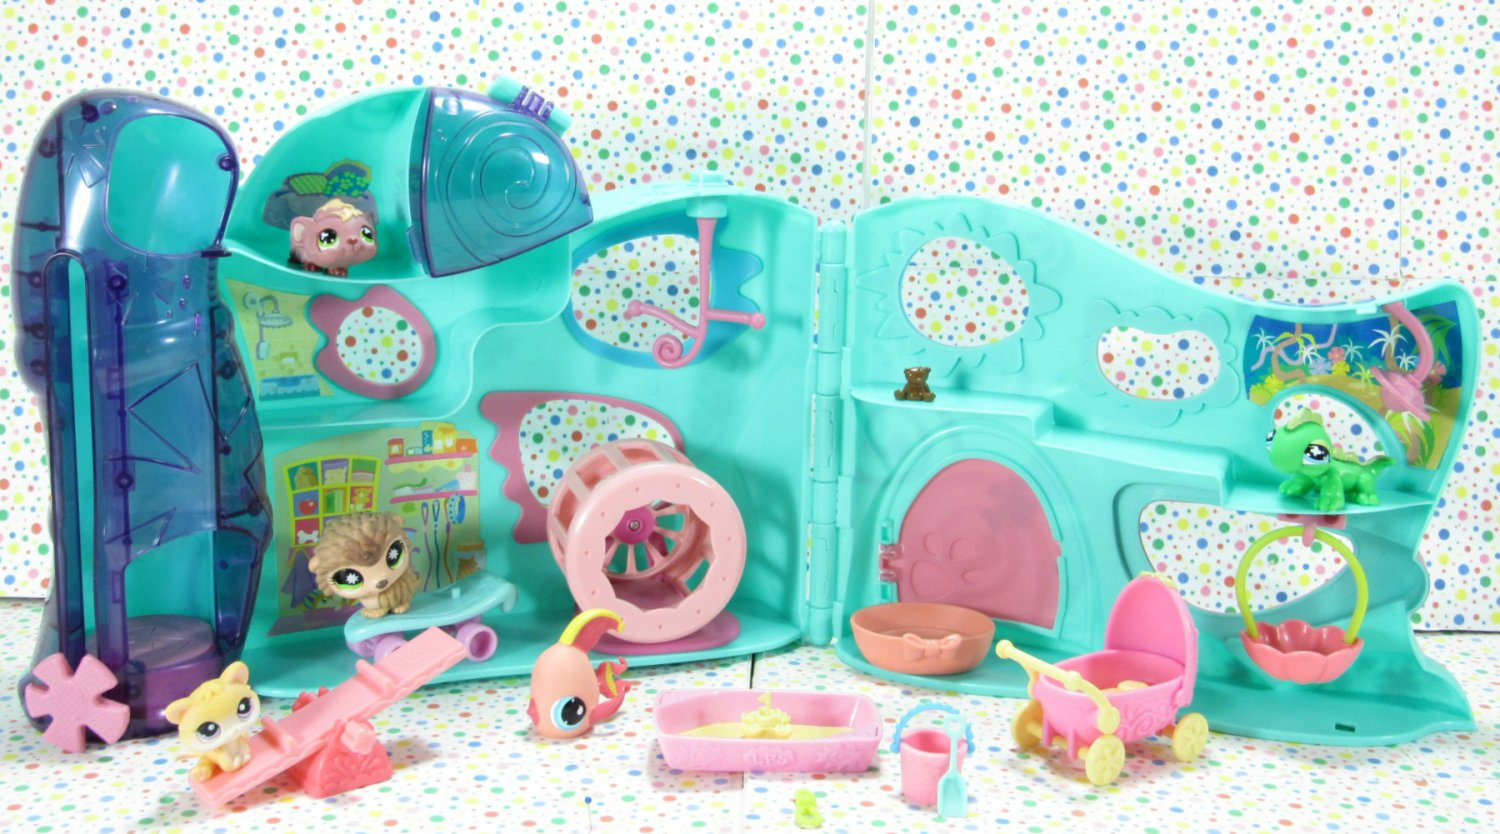 Littlest Pet Shop Playful Pets Daycare